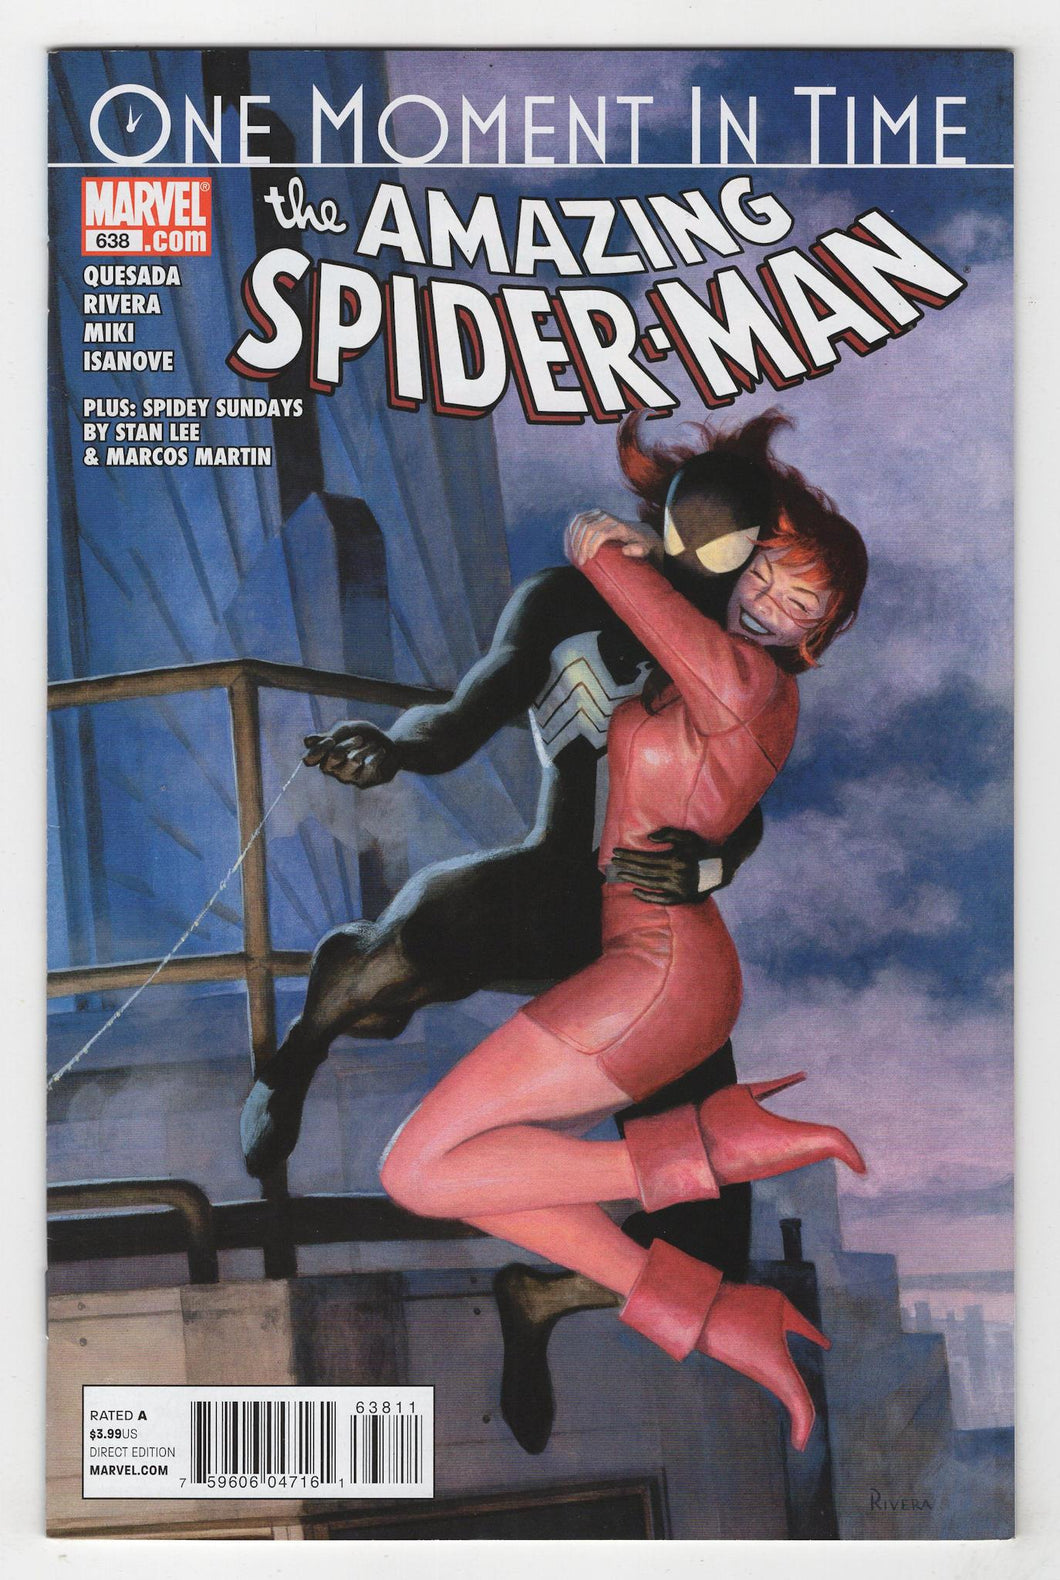 Amazing Spider-Man #638 Cover Front